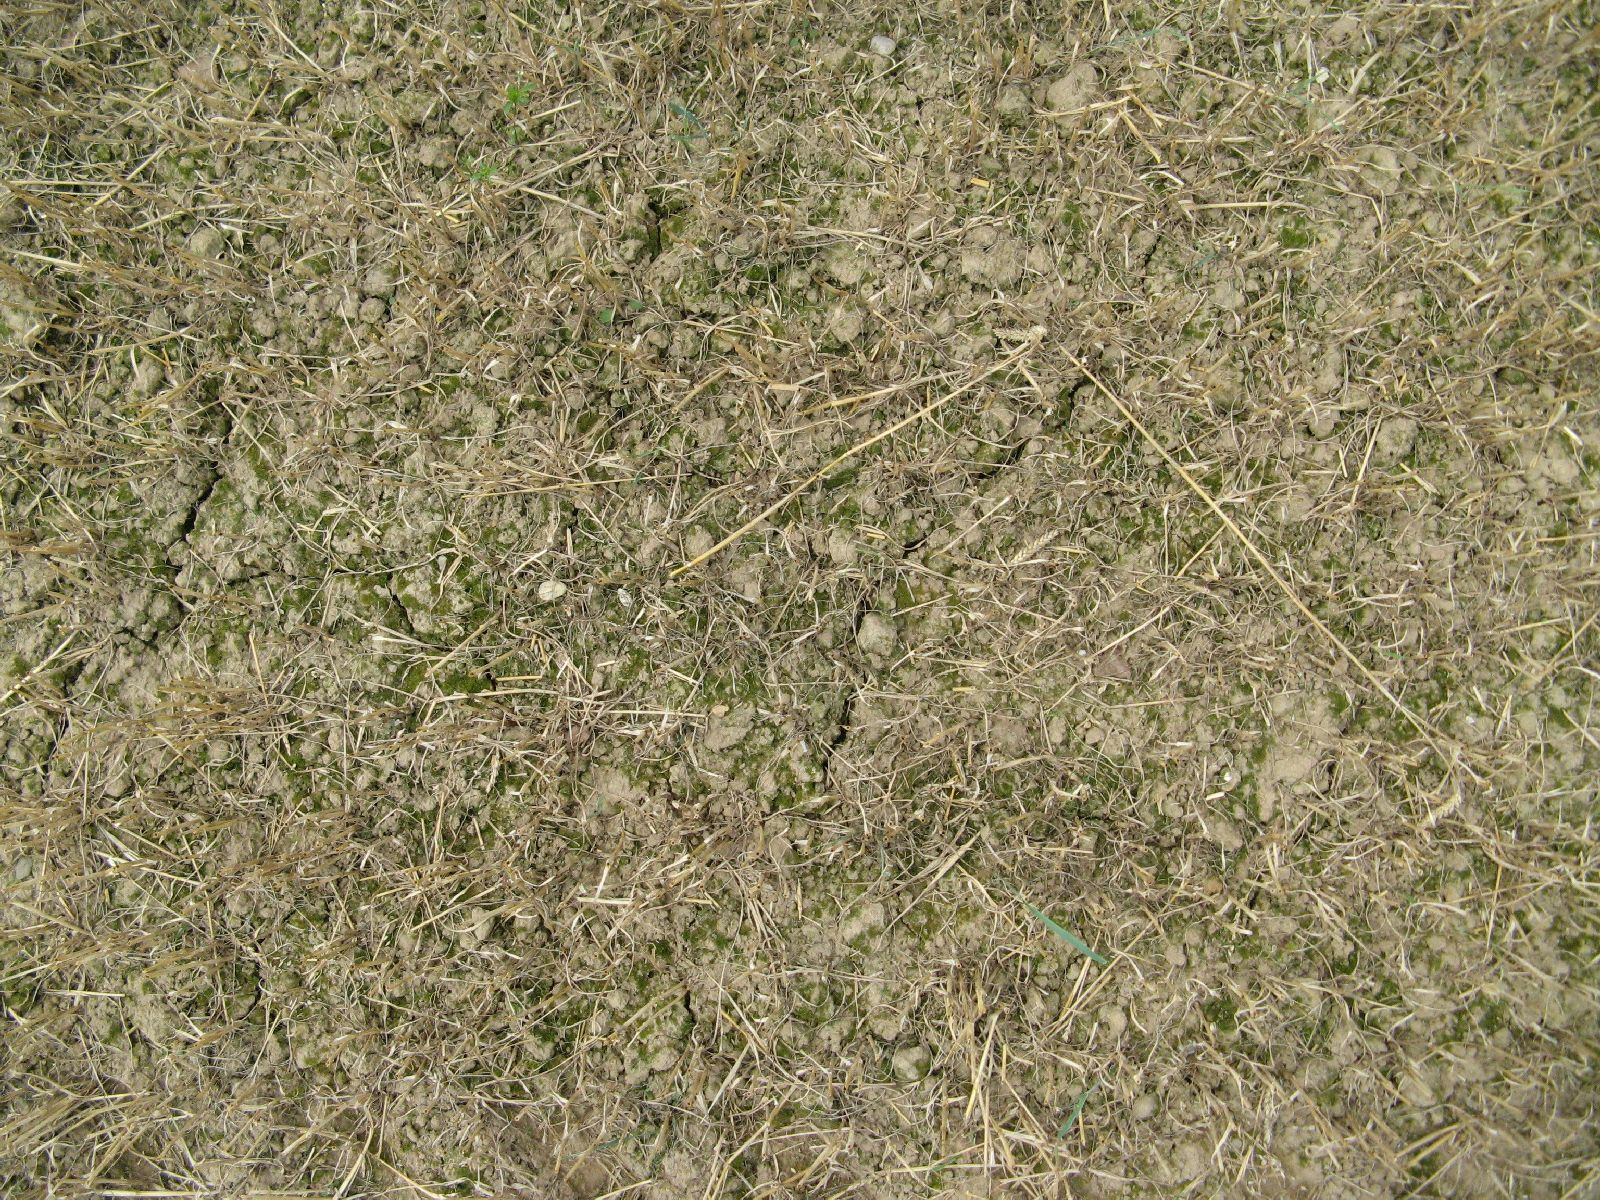 Ground-Nature_Texture_B_01022